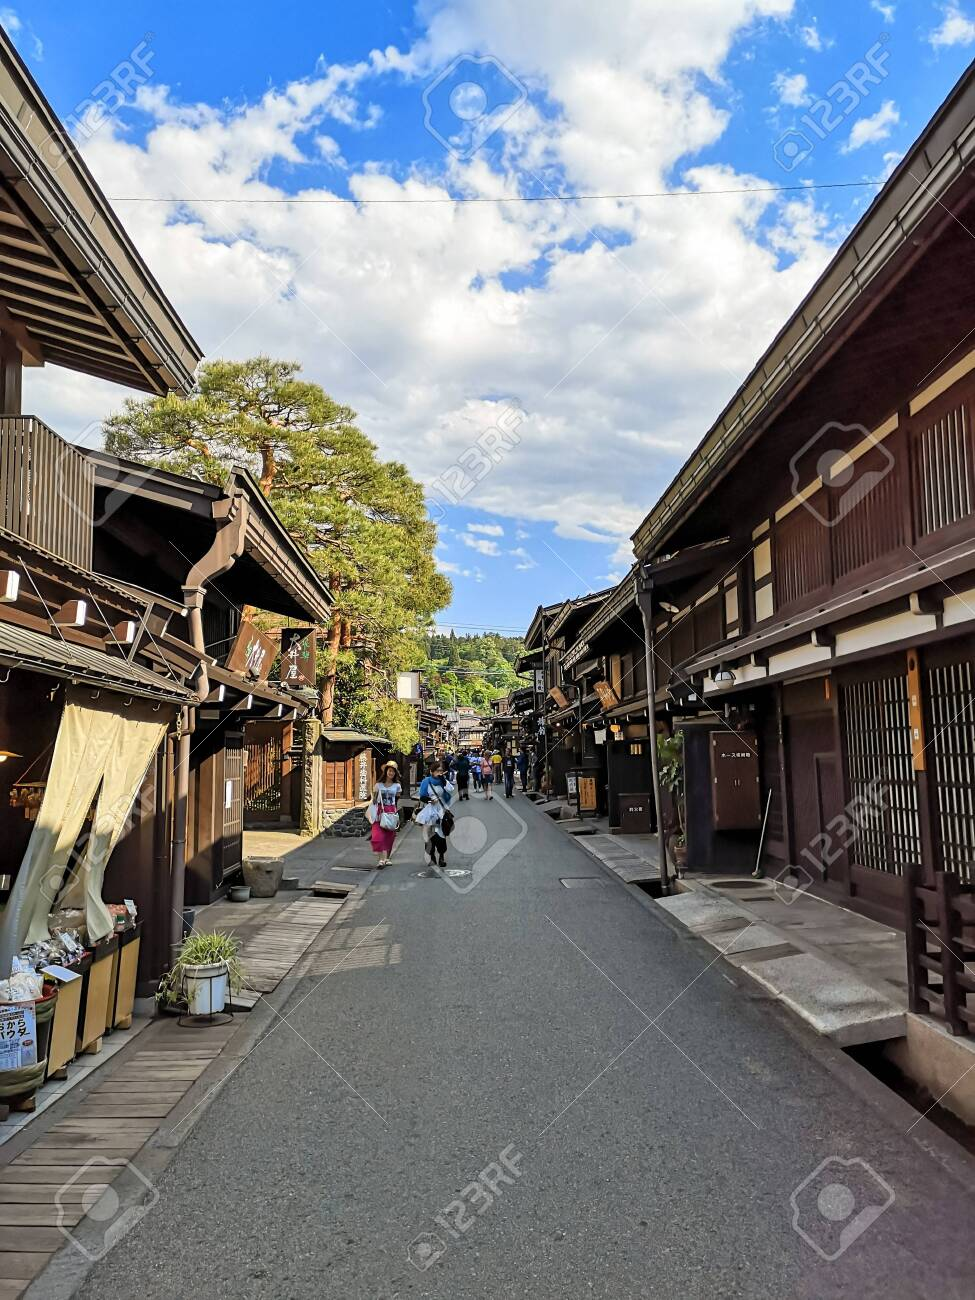 City center of the old traditional Japanese mountain town Takayama in Gifu prefecture with authentic wooden buildings - 137495732